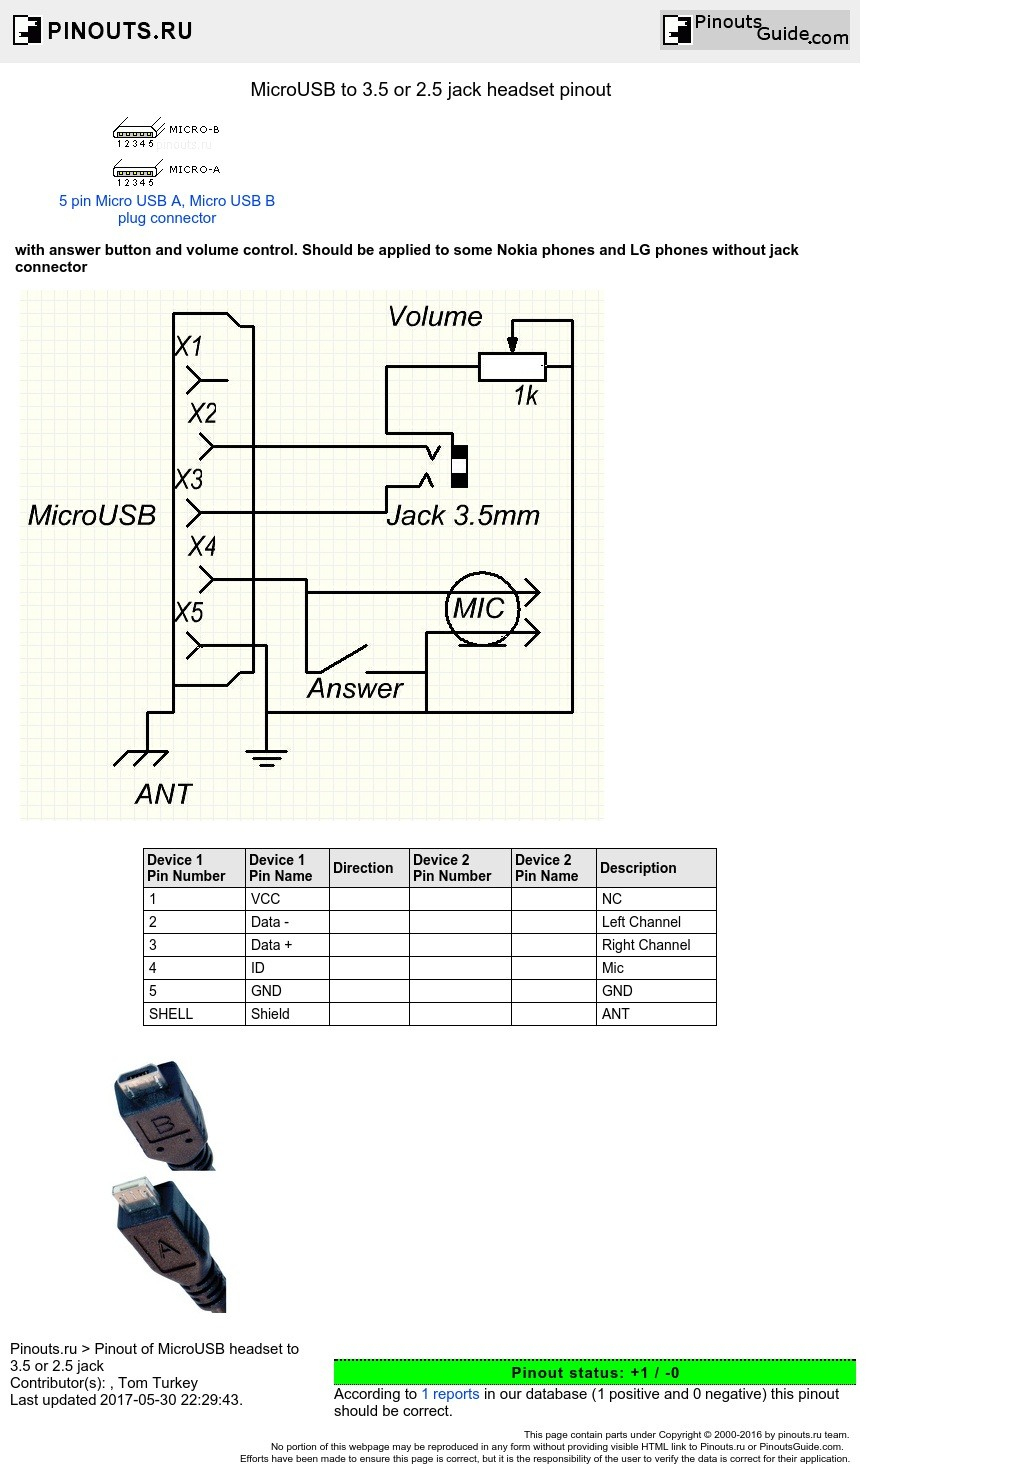 Usb Wiring Diagram 2 | Wiring Library - 2 Wiring Micro Usb B To Usb A Diagram